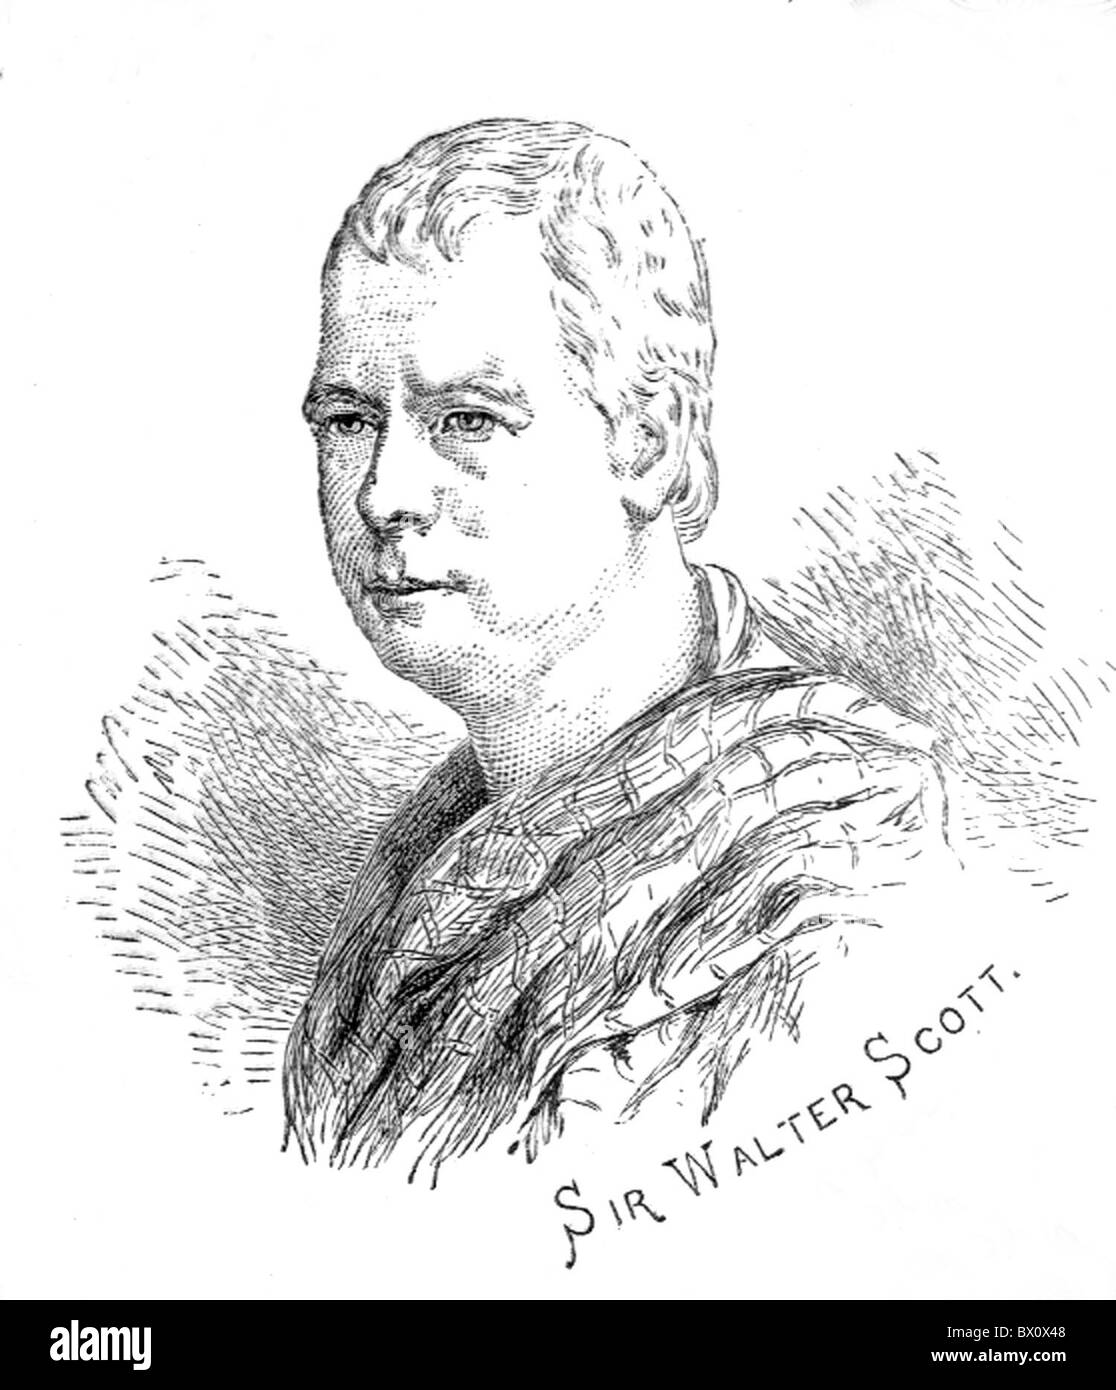 Archive image of historical literary figures. This is Sir Walter Scott. - Stock Image